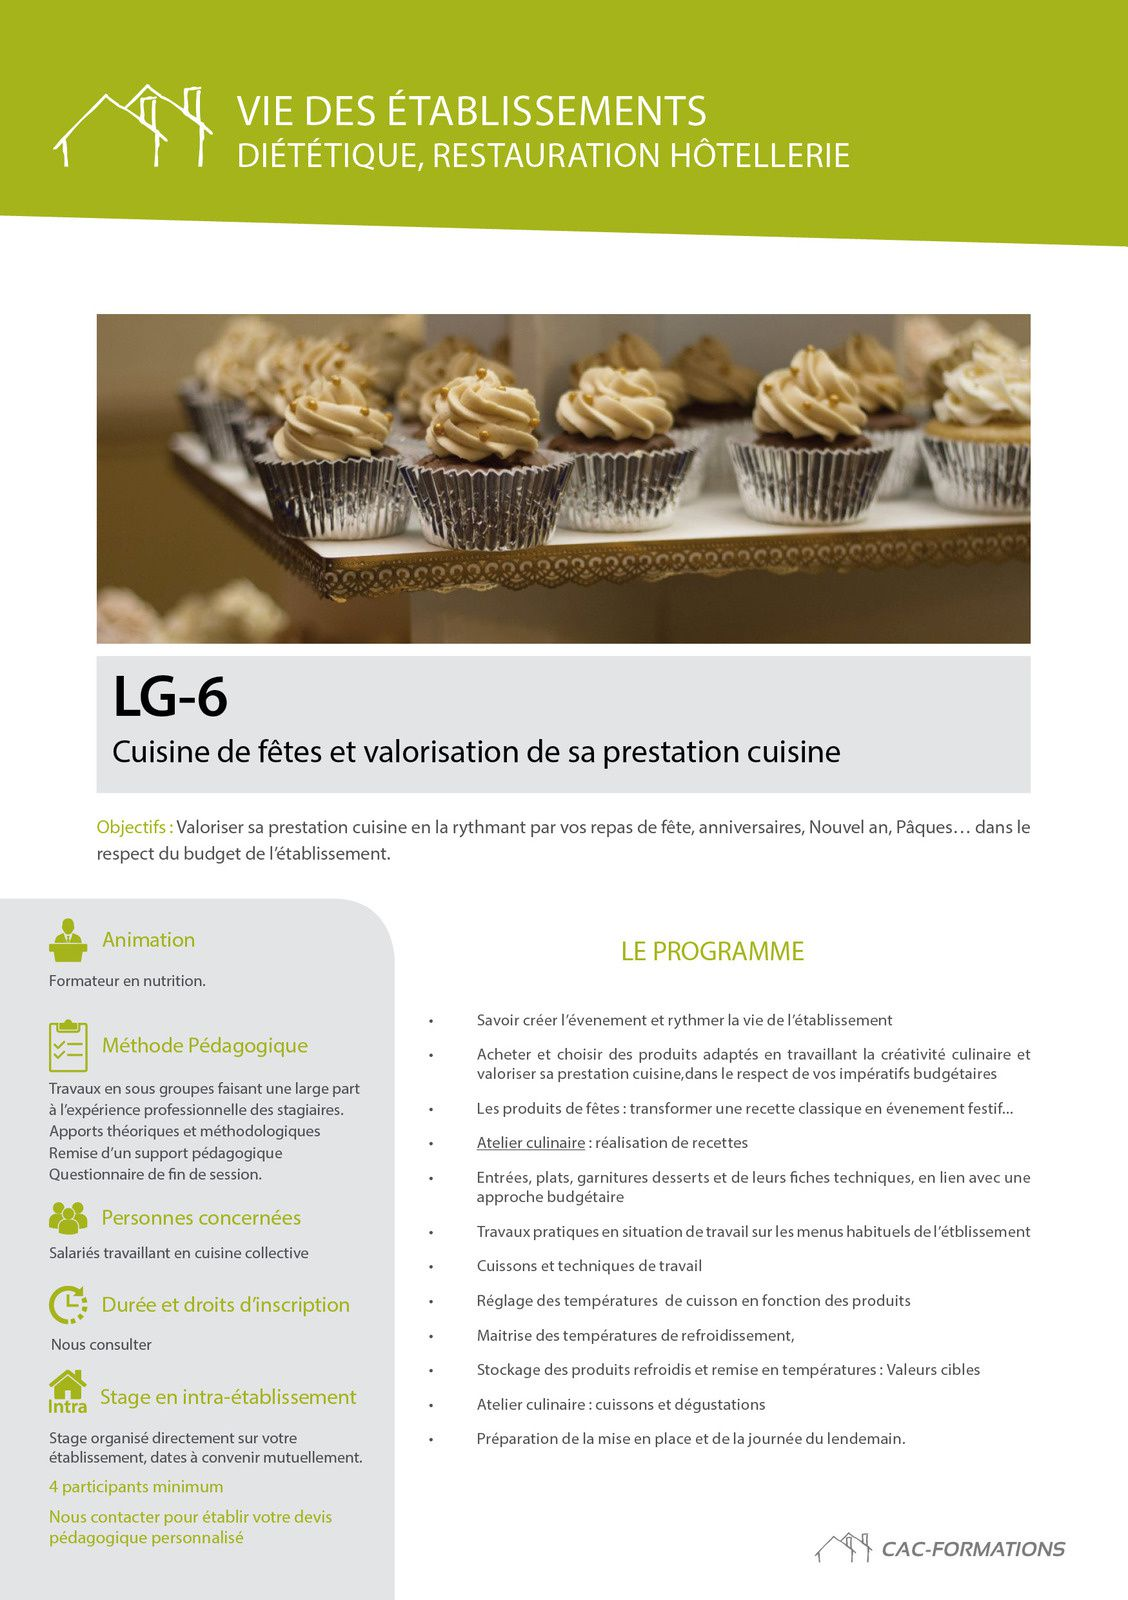 Handicap le blog du cac formations - Blog cuisine dietetique ...